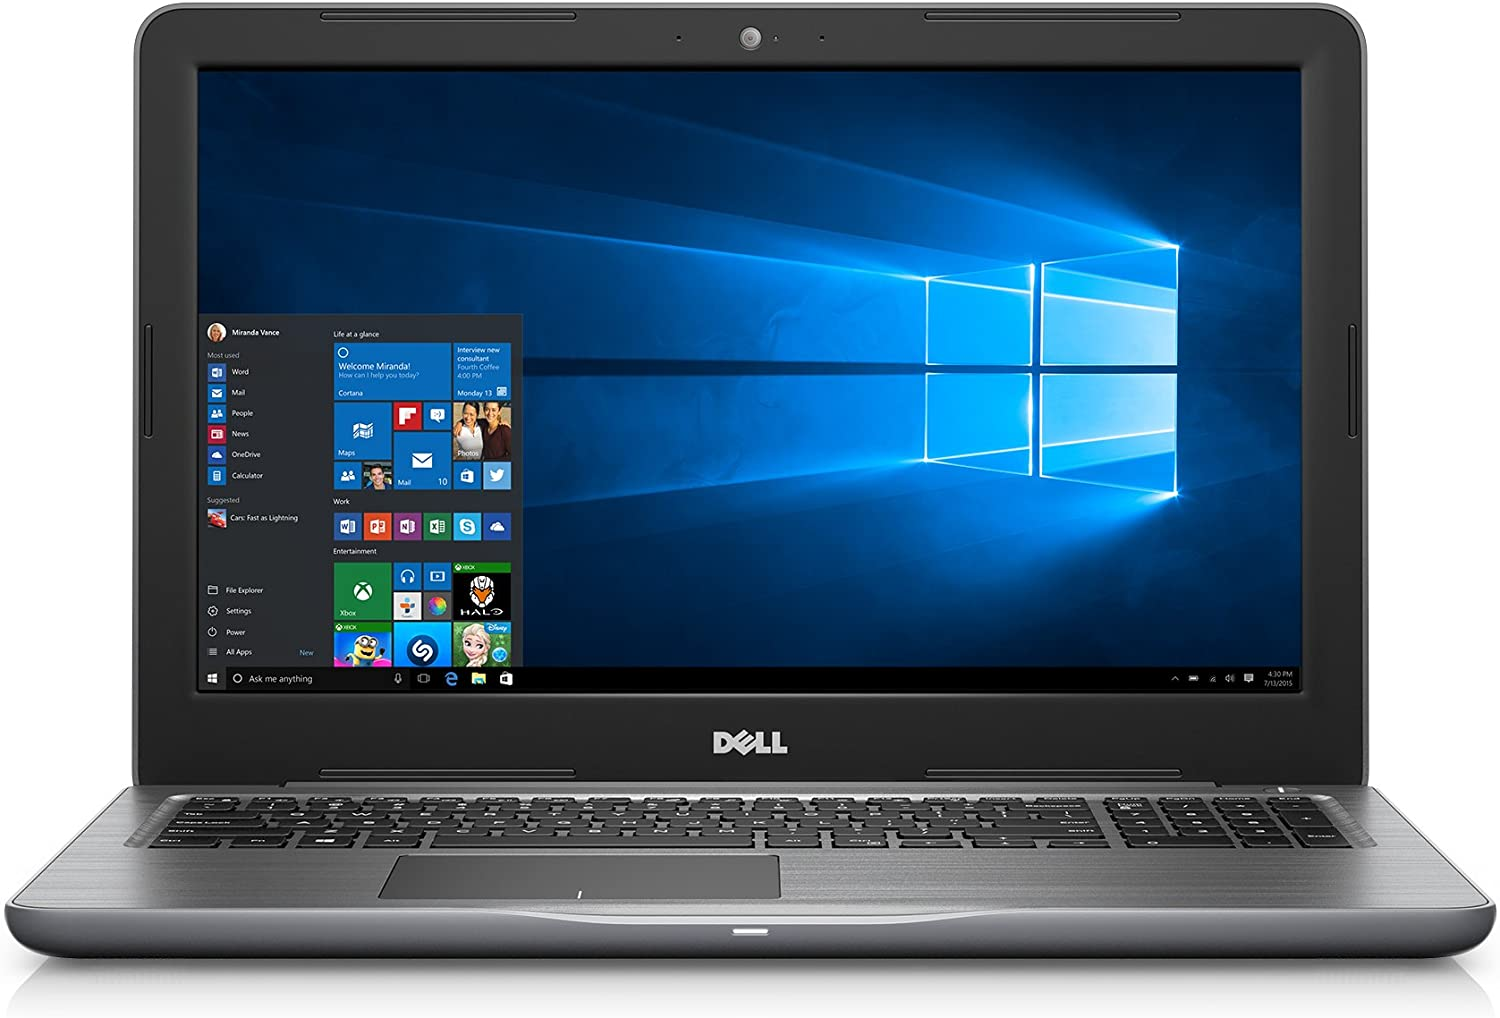 "Dell Inspiron High Performance 15.6"" FHD Laptop AMD A12 Processor, 8GB RAM,1 TB HDD Radeon R7 Graphics Windows 10 Pro"